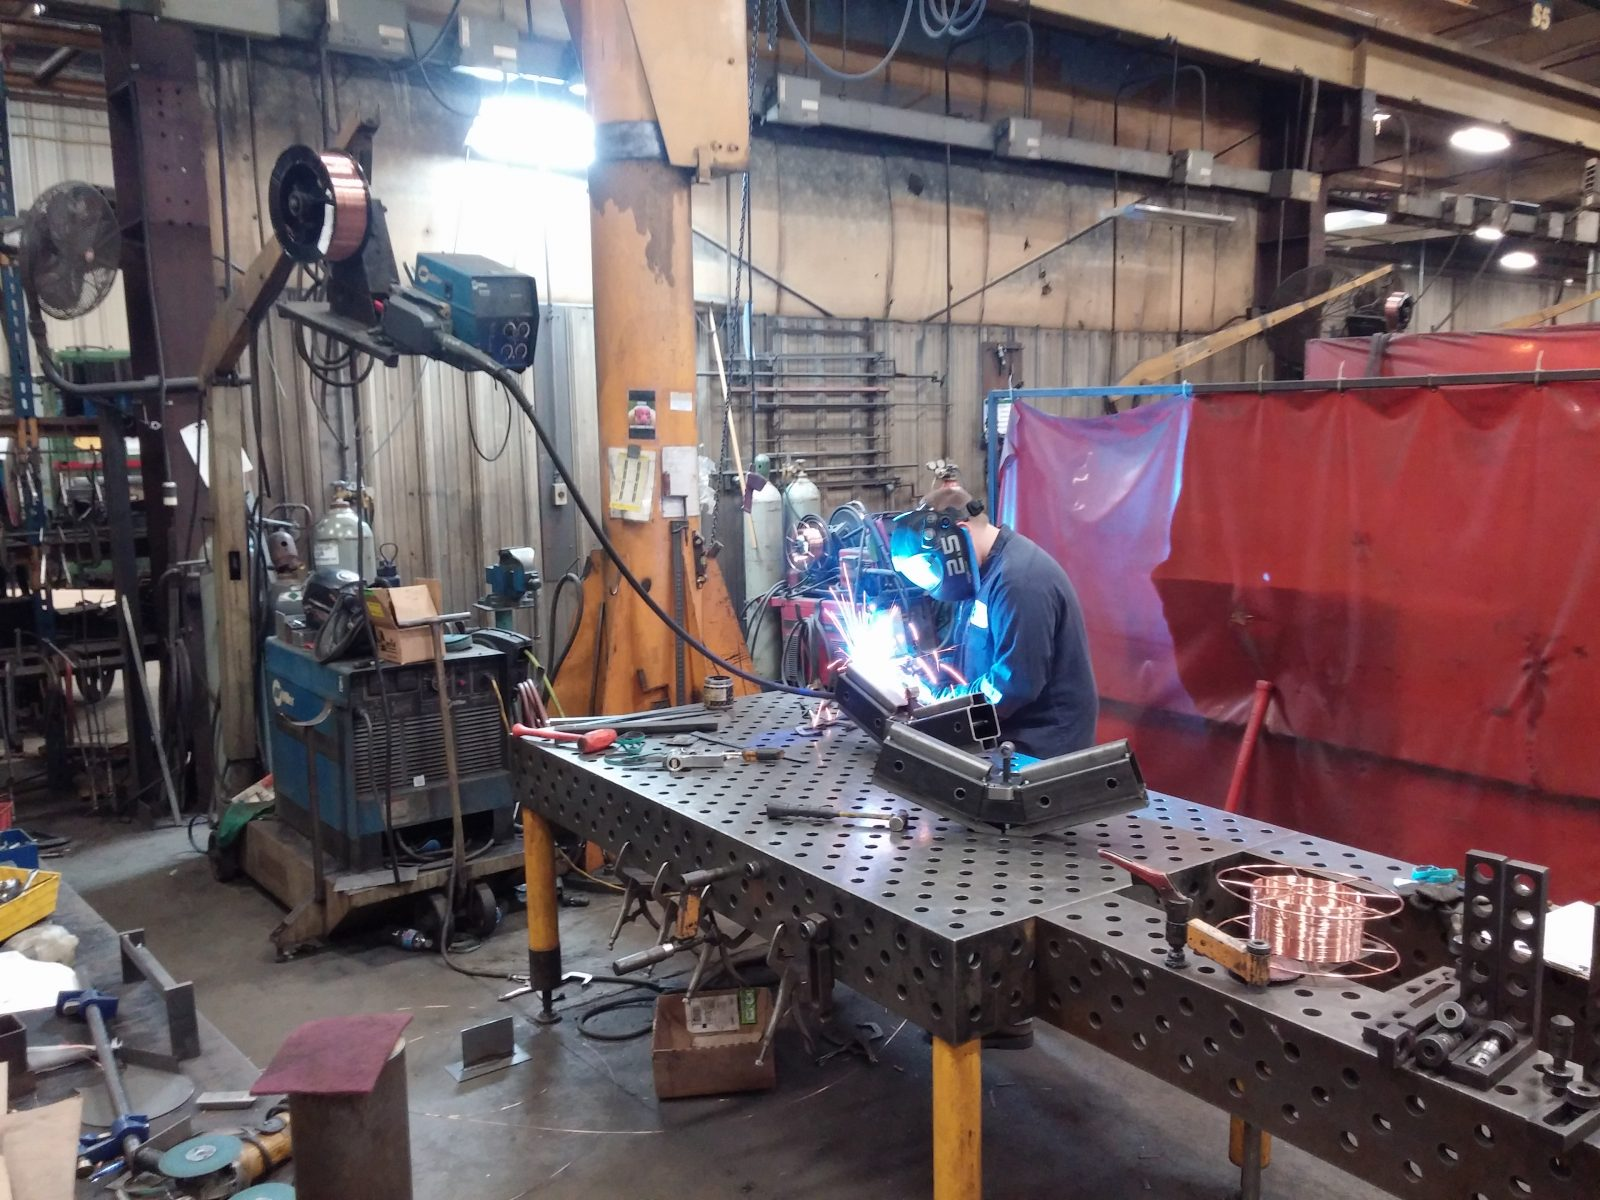 Welding a metal part for fabrication